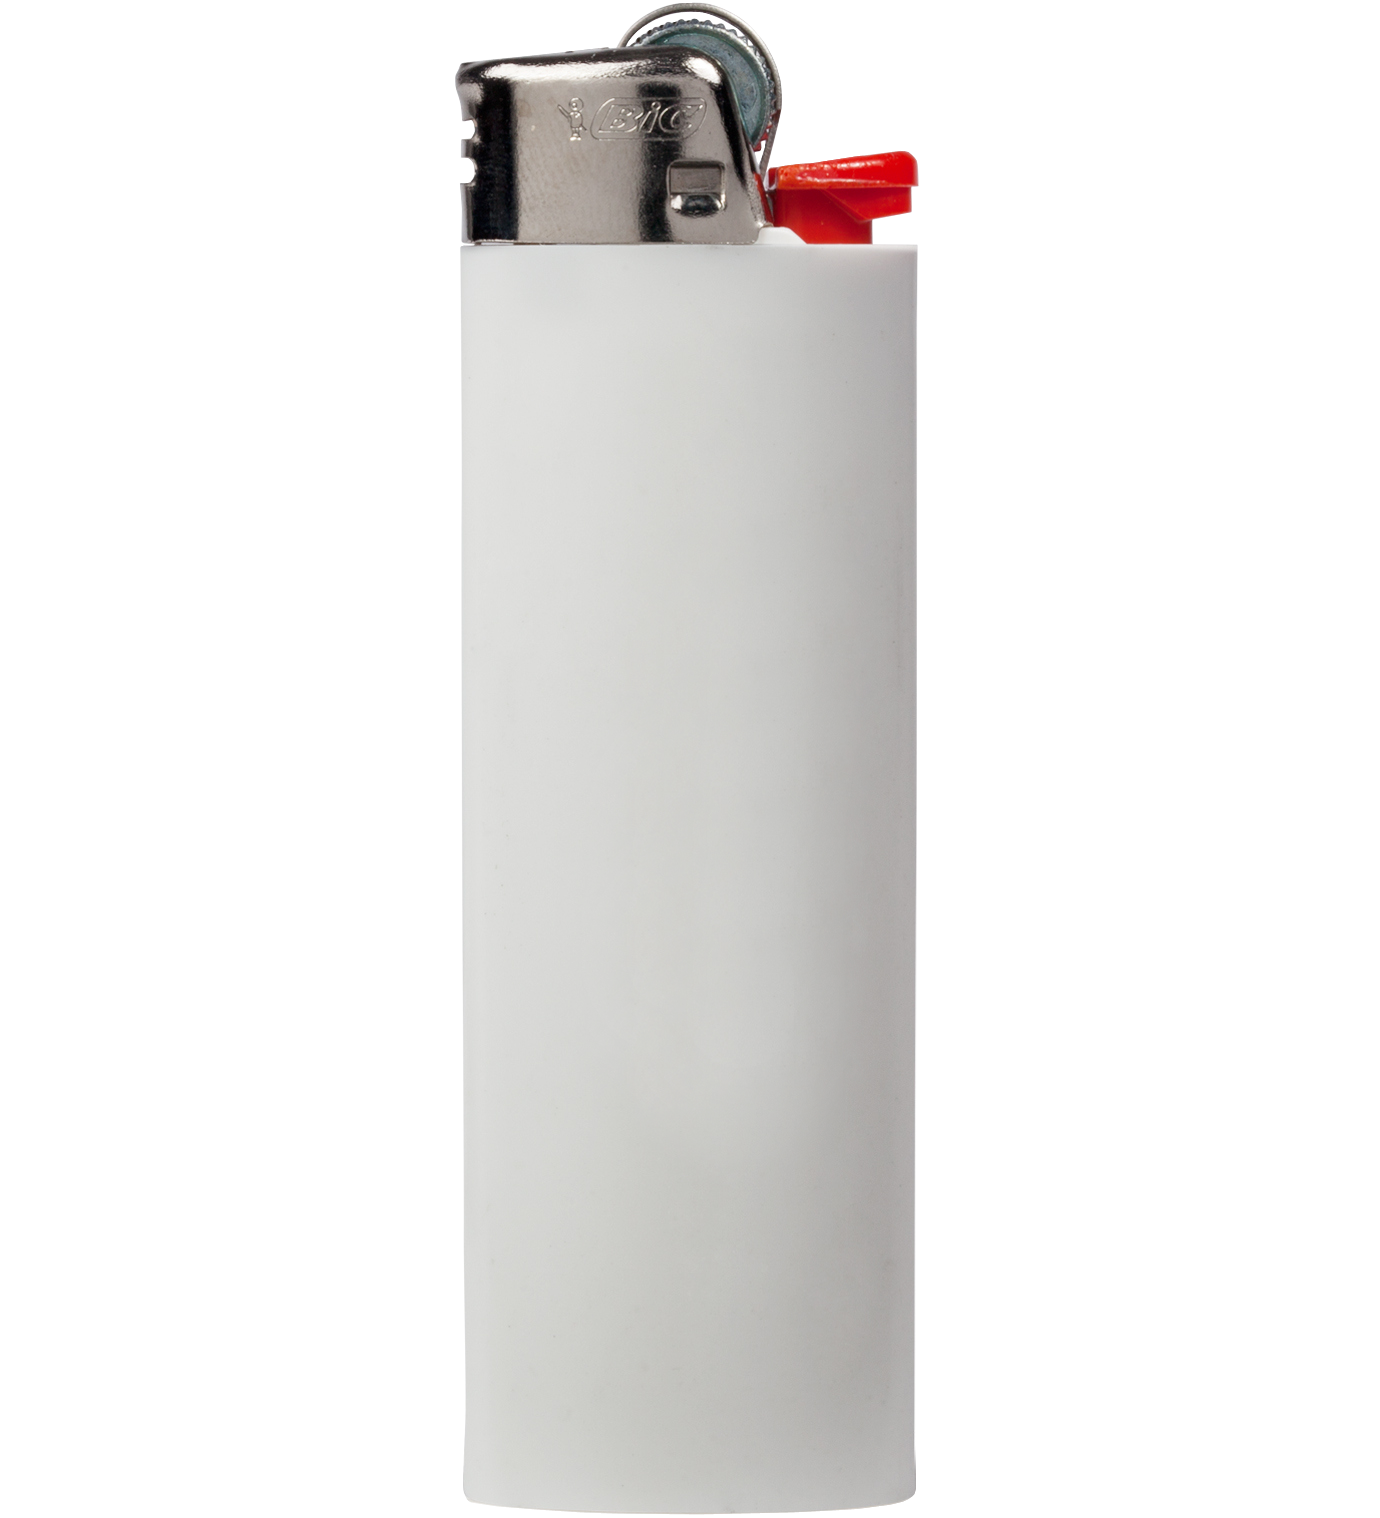 Lighter transparent white. Zippo png image purepng